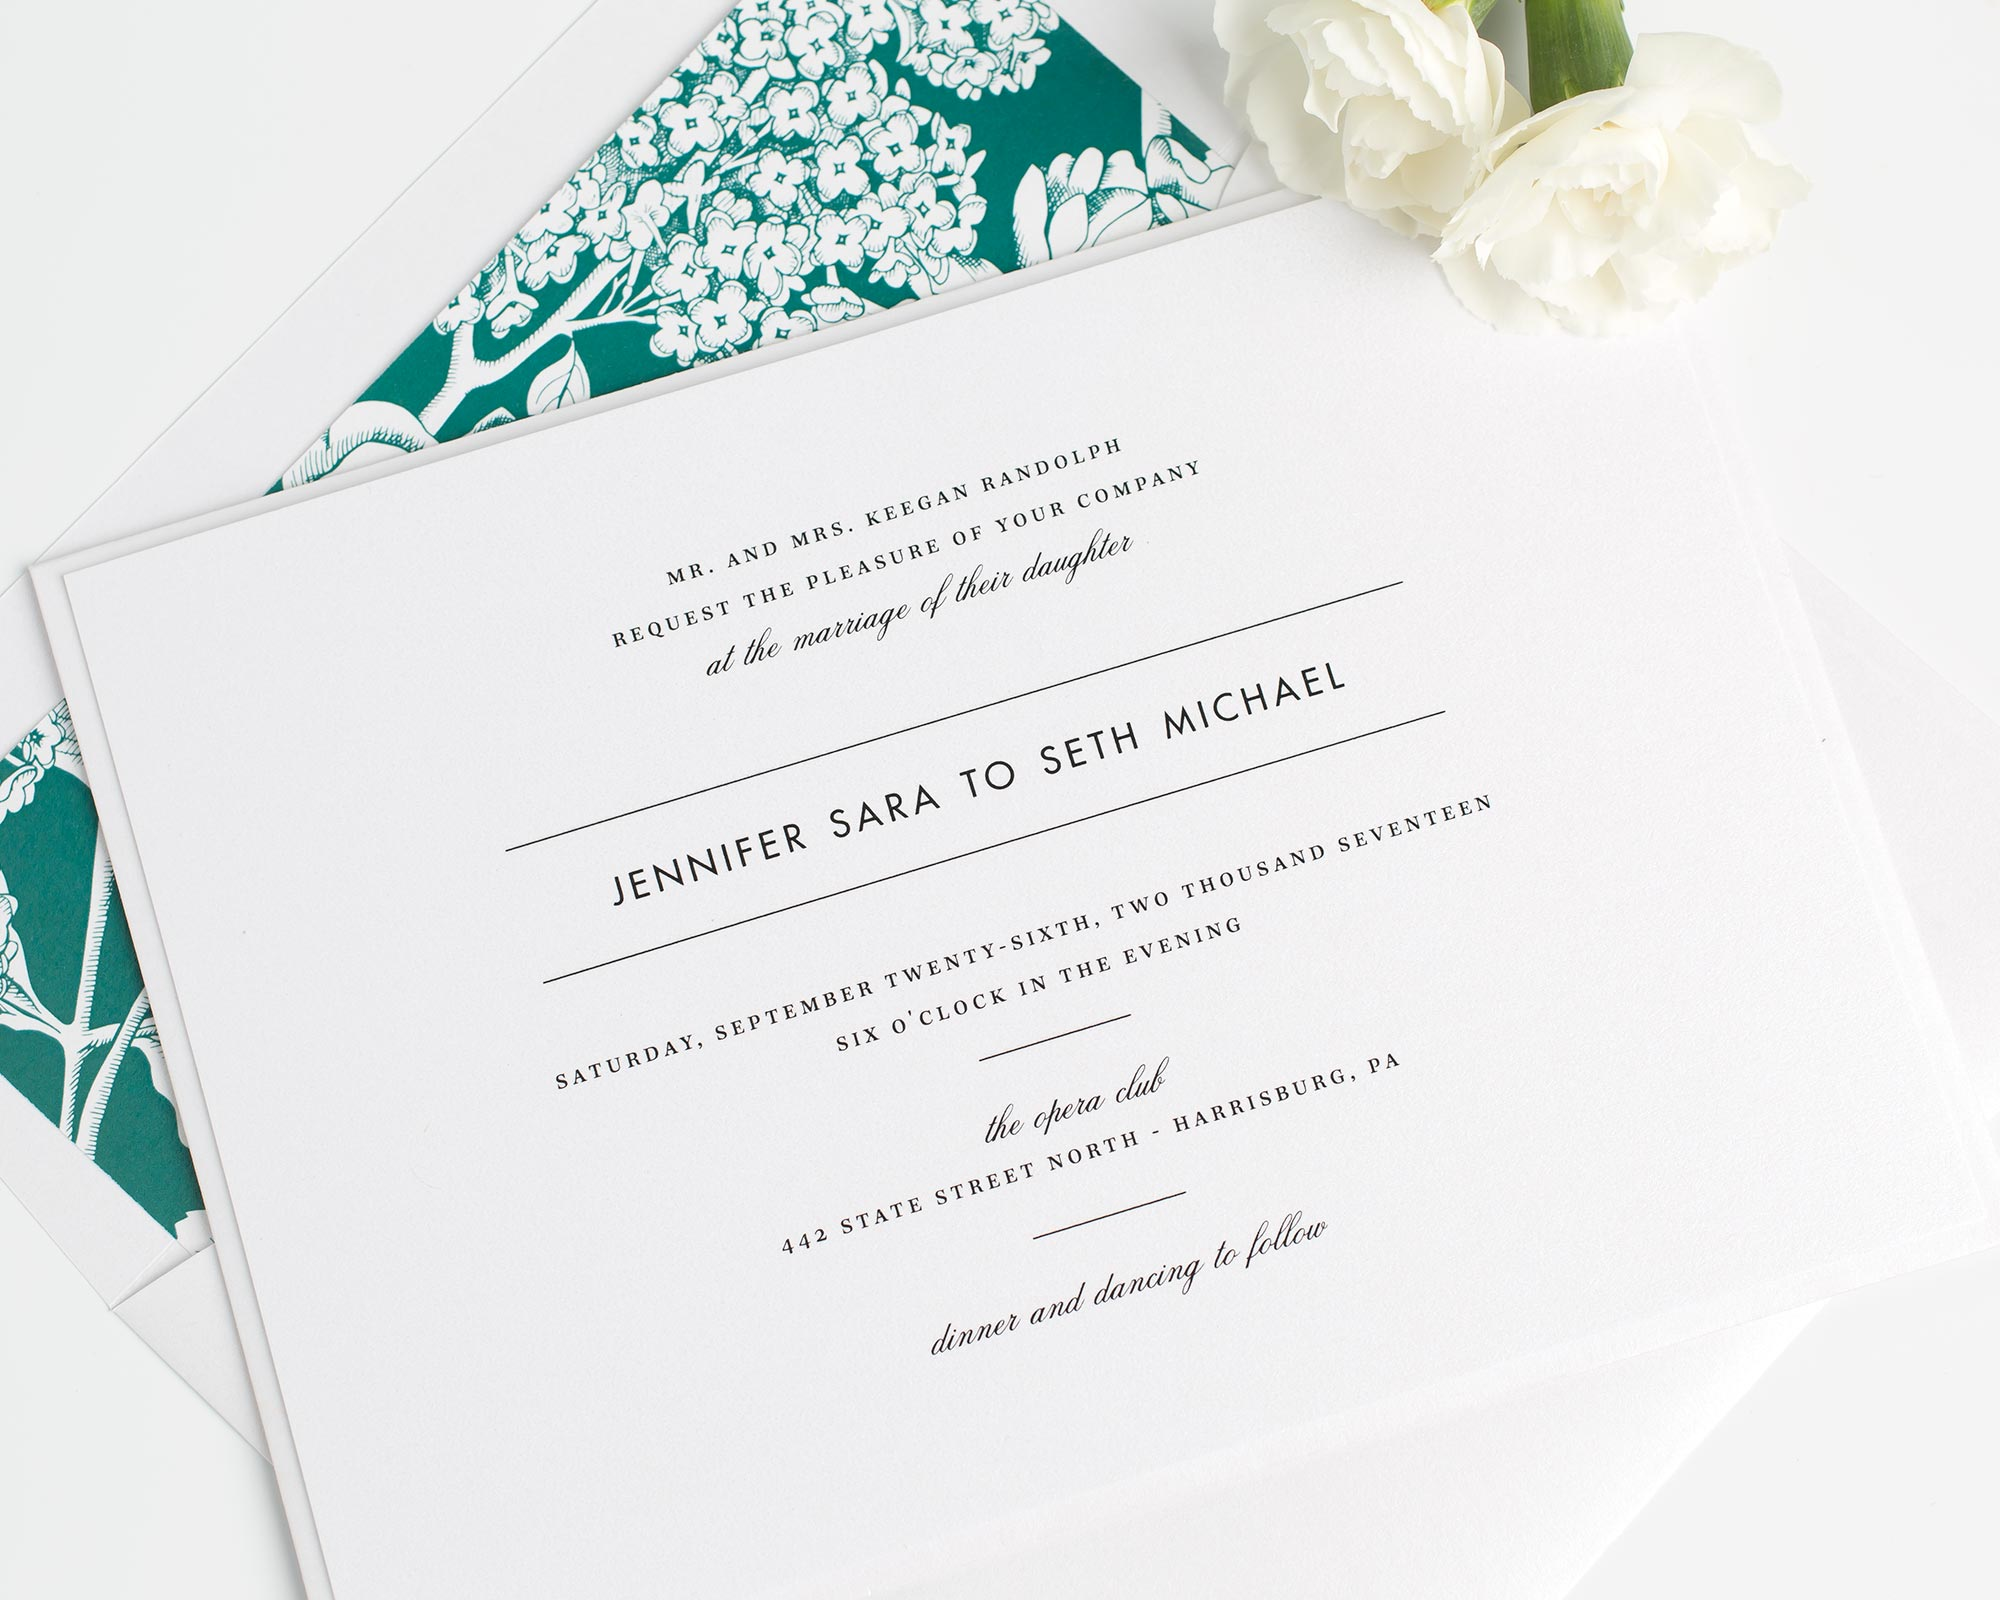 Modern Romantic Wedding Invites In Emerald Green with Floral Accents